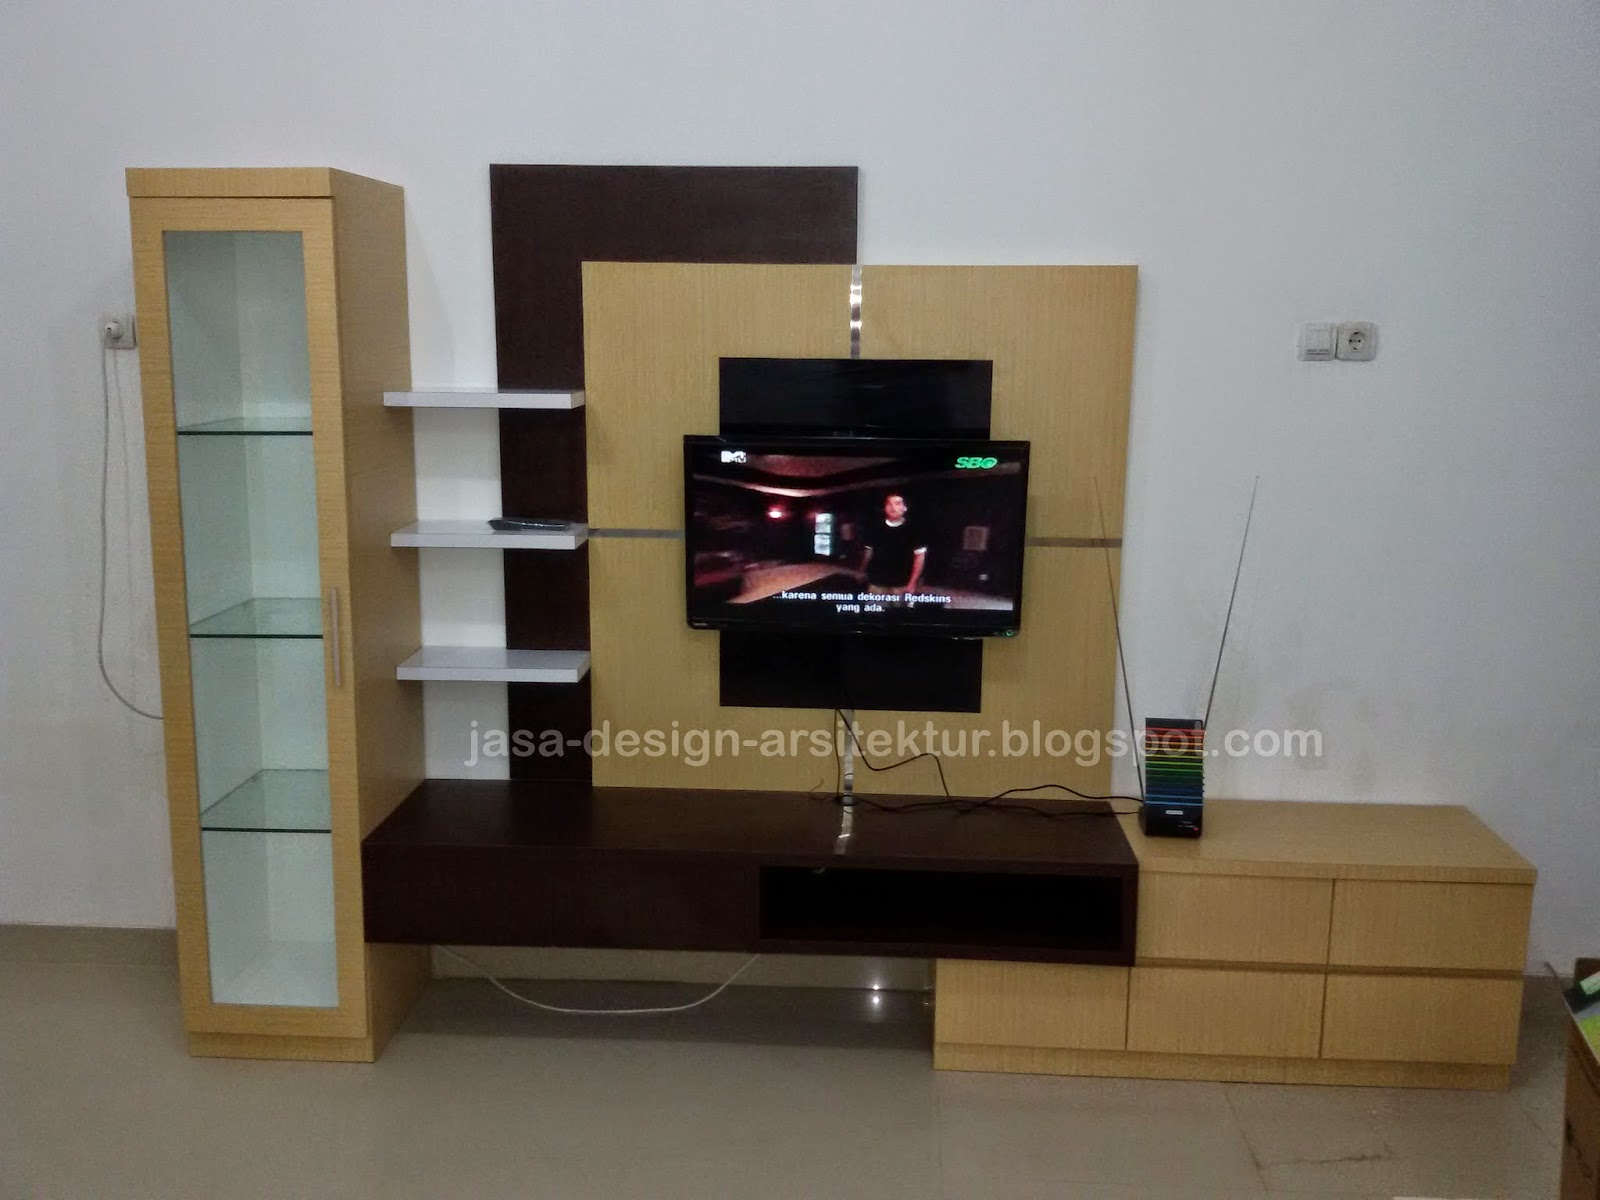 Harga kitchen set lemari pakaian sliding rak tv autos post for Katalog kitchen set